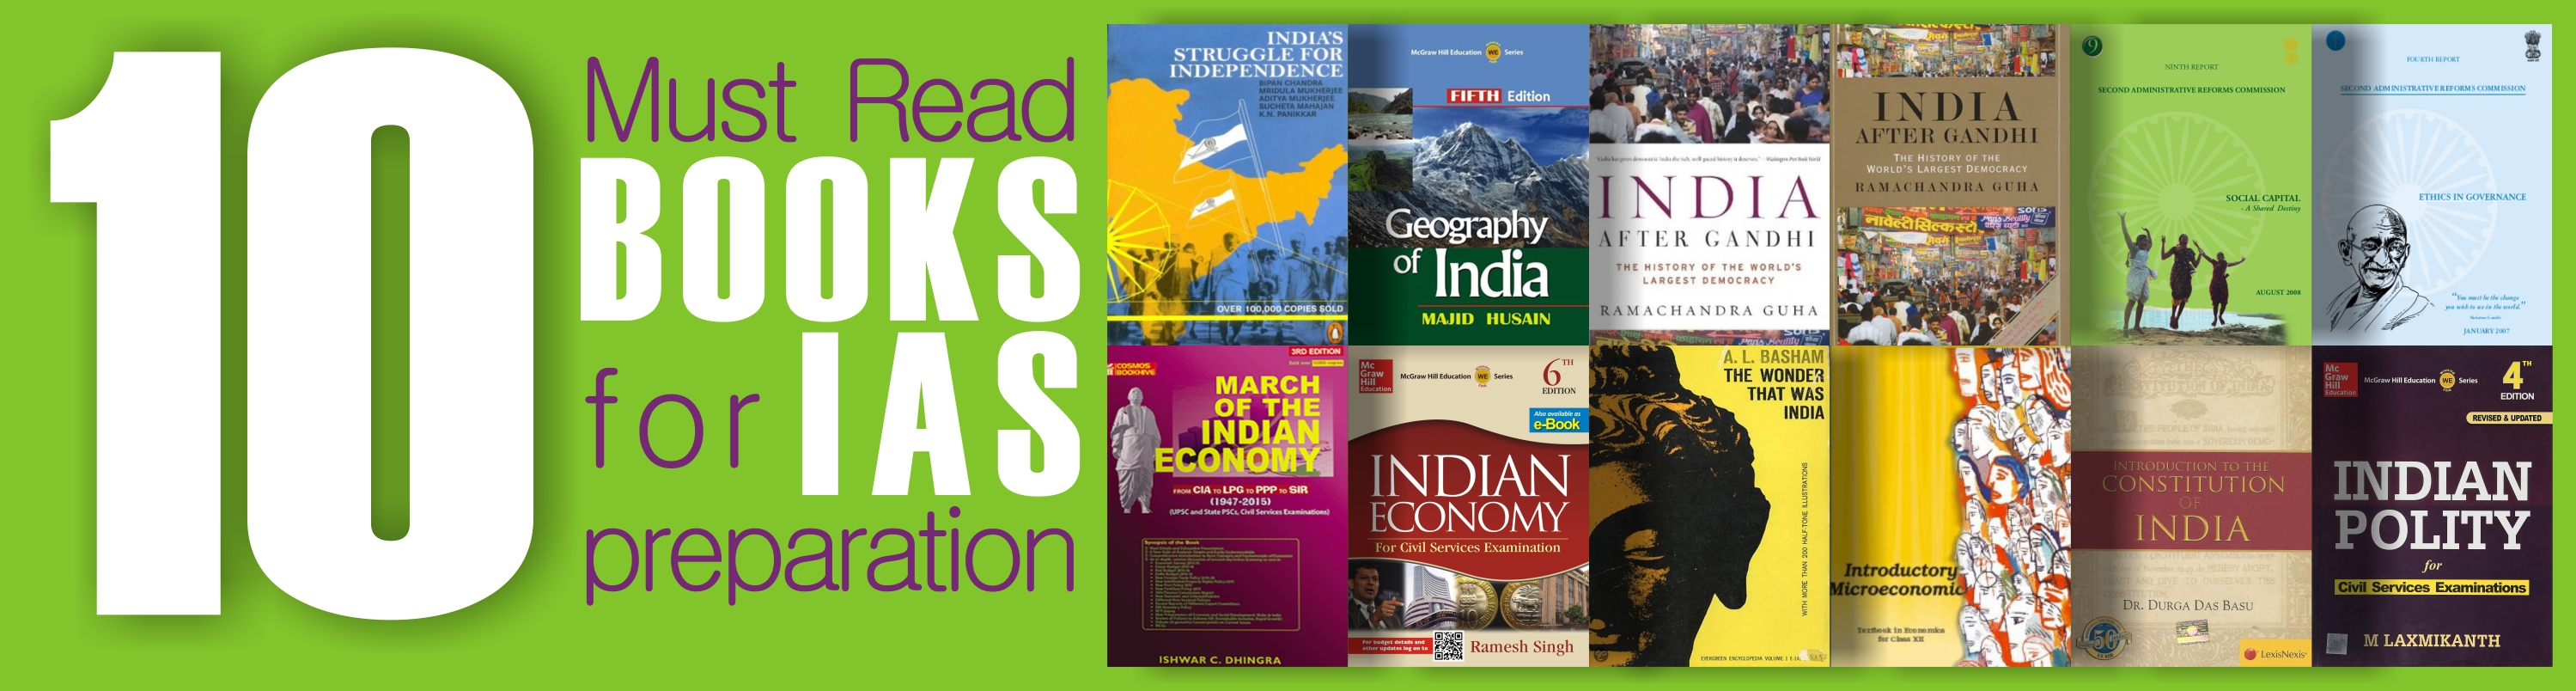 essay books for upsc